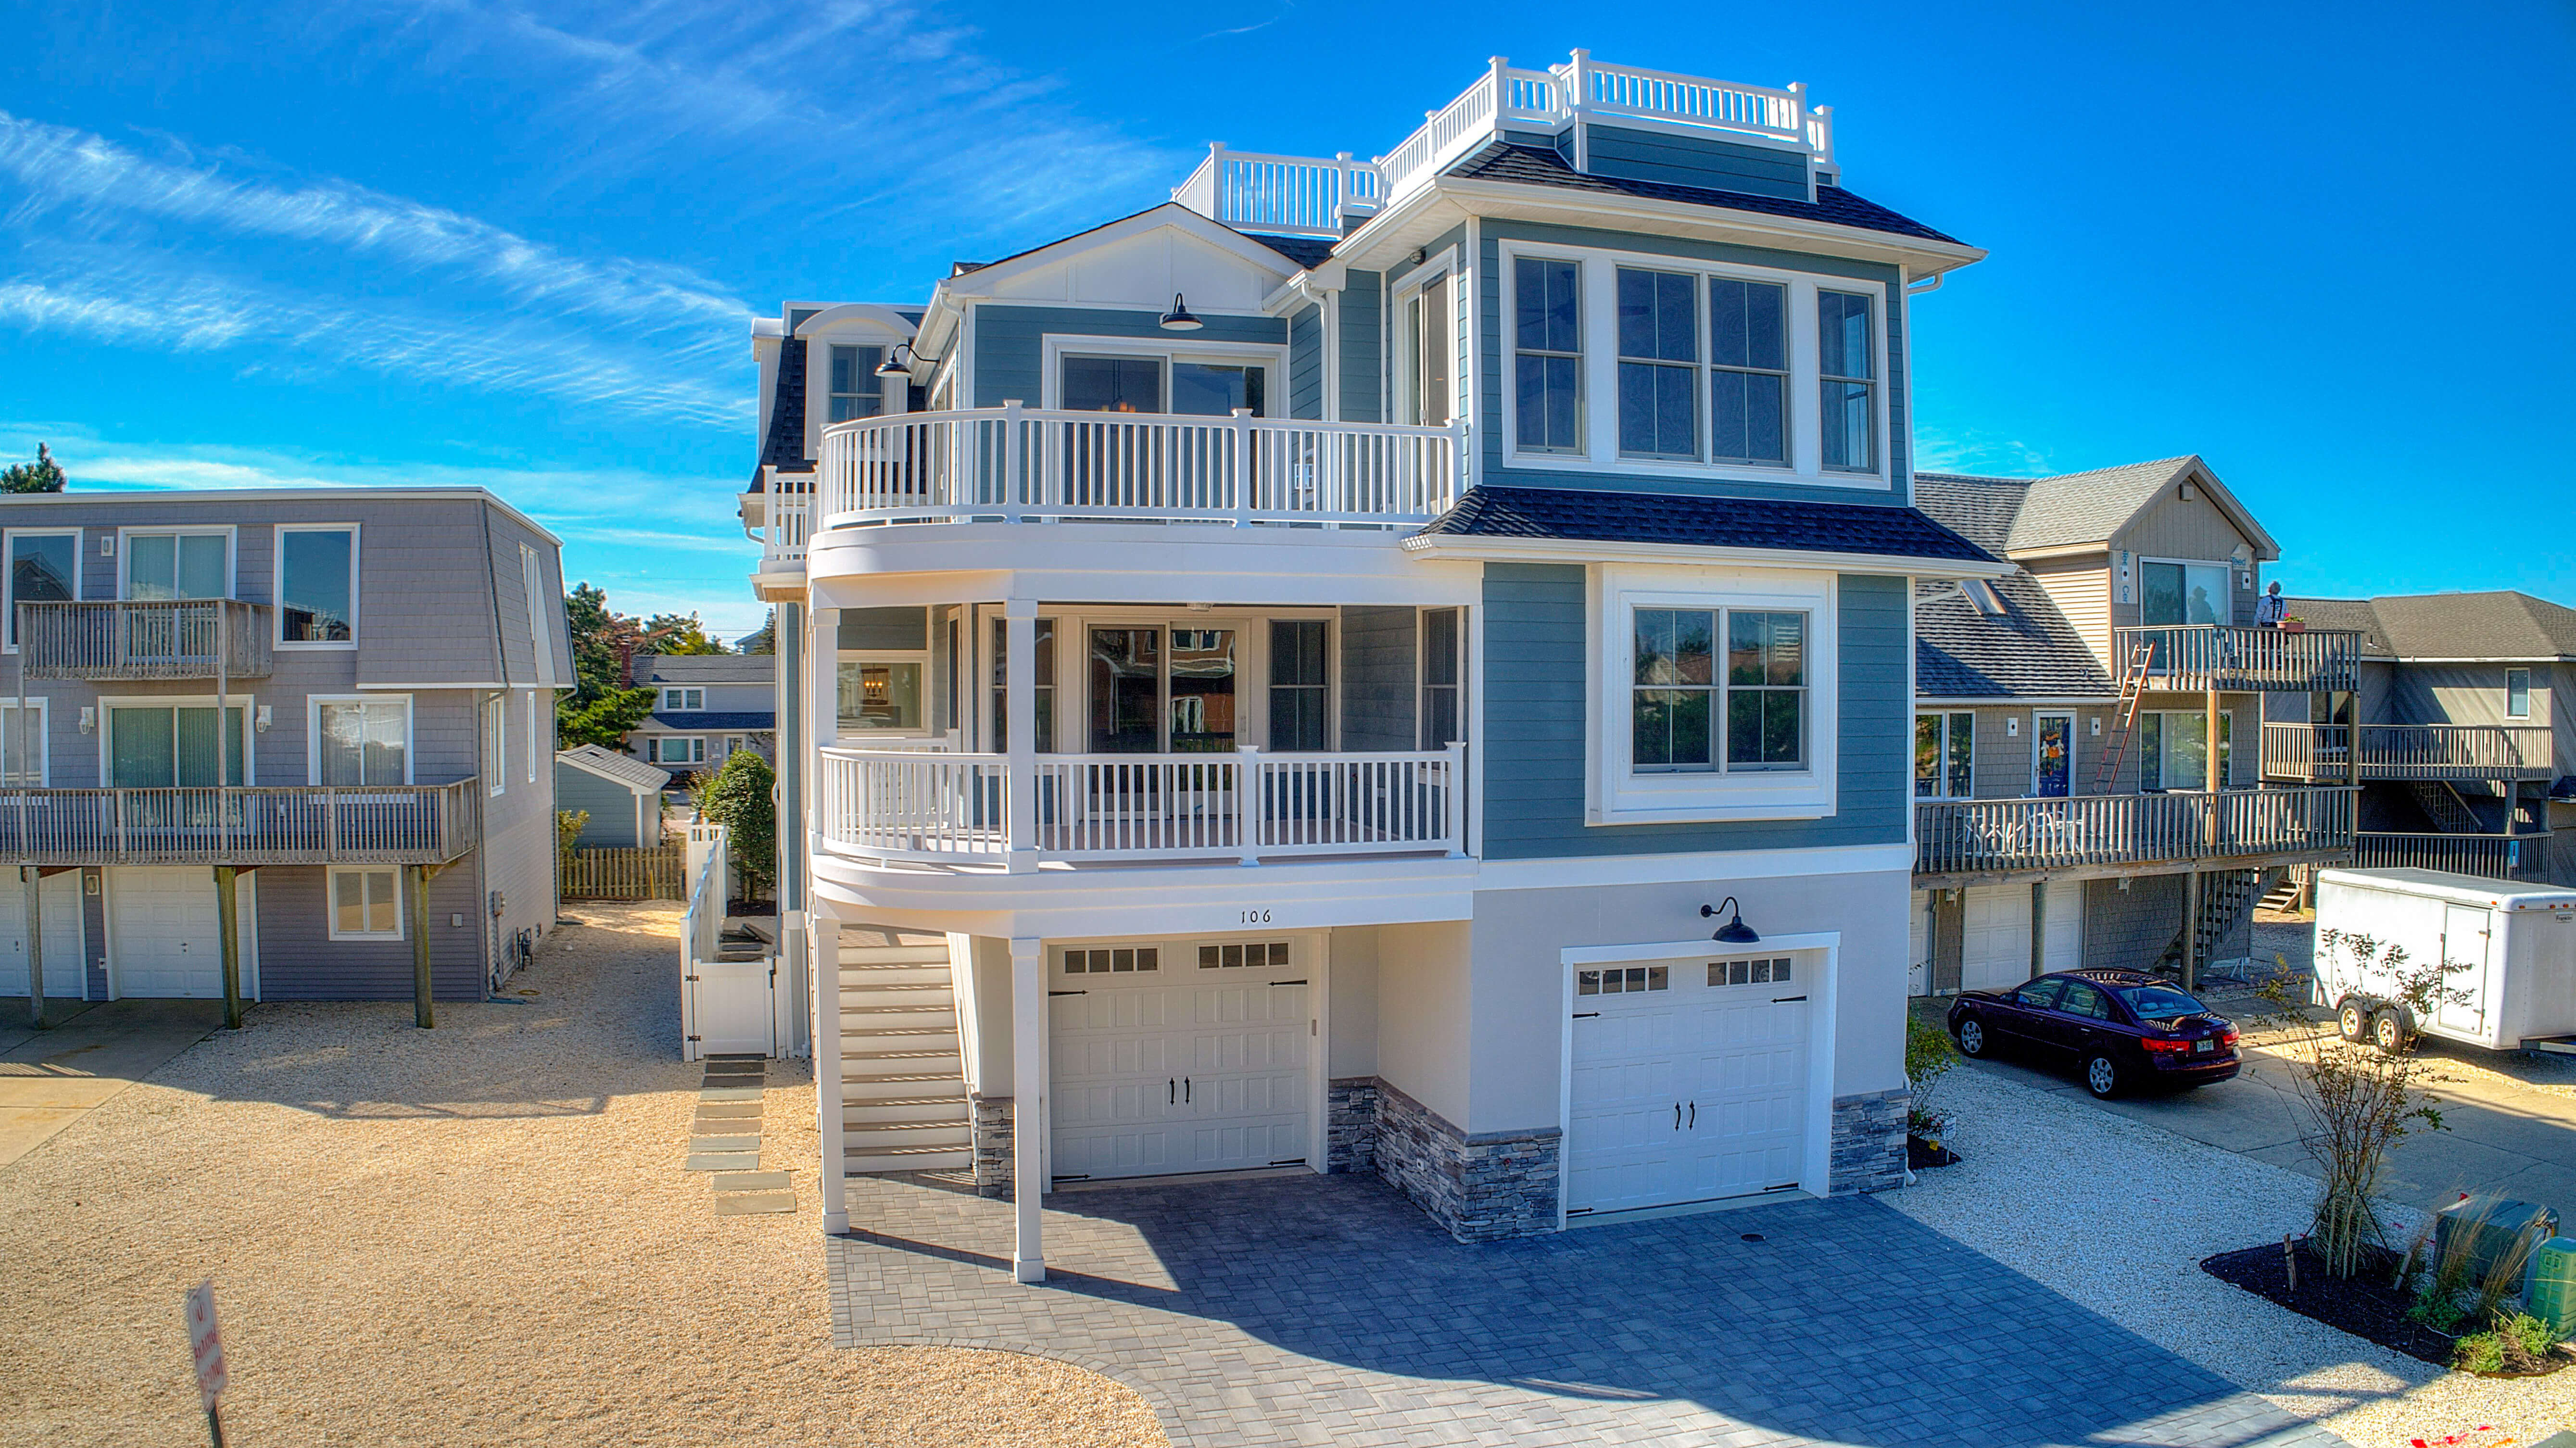 LBI New Construction Homes | 101 E Idaho Ave Haven Beach| LBI | Nathan Colmer